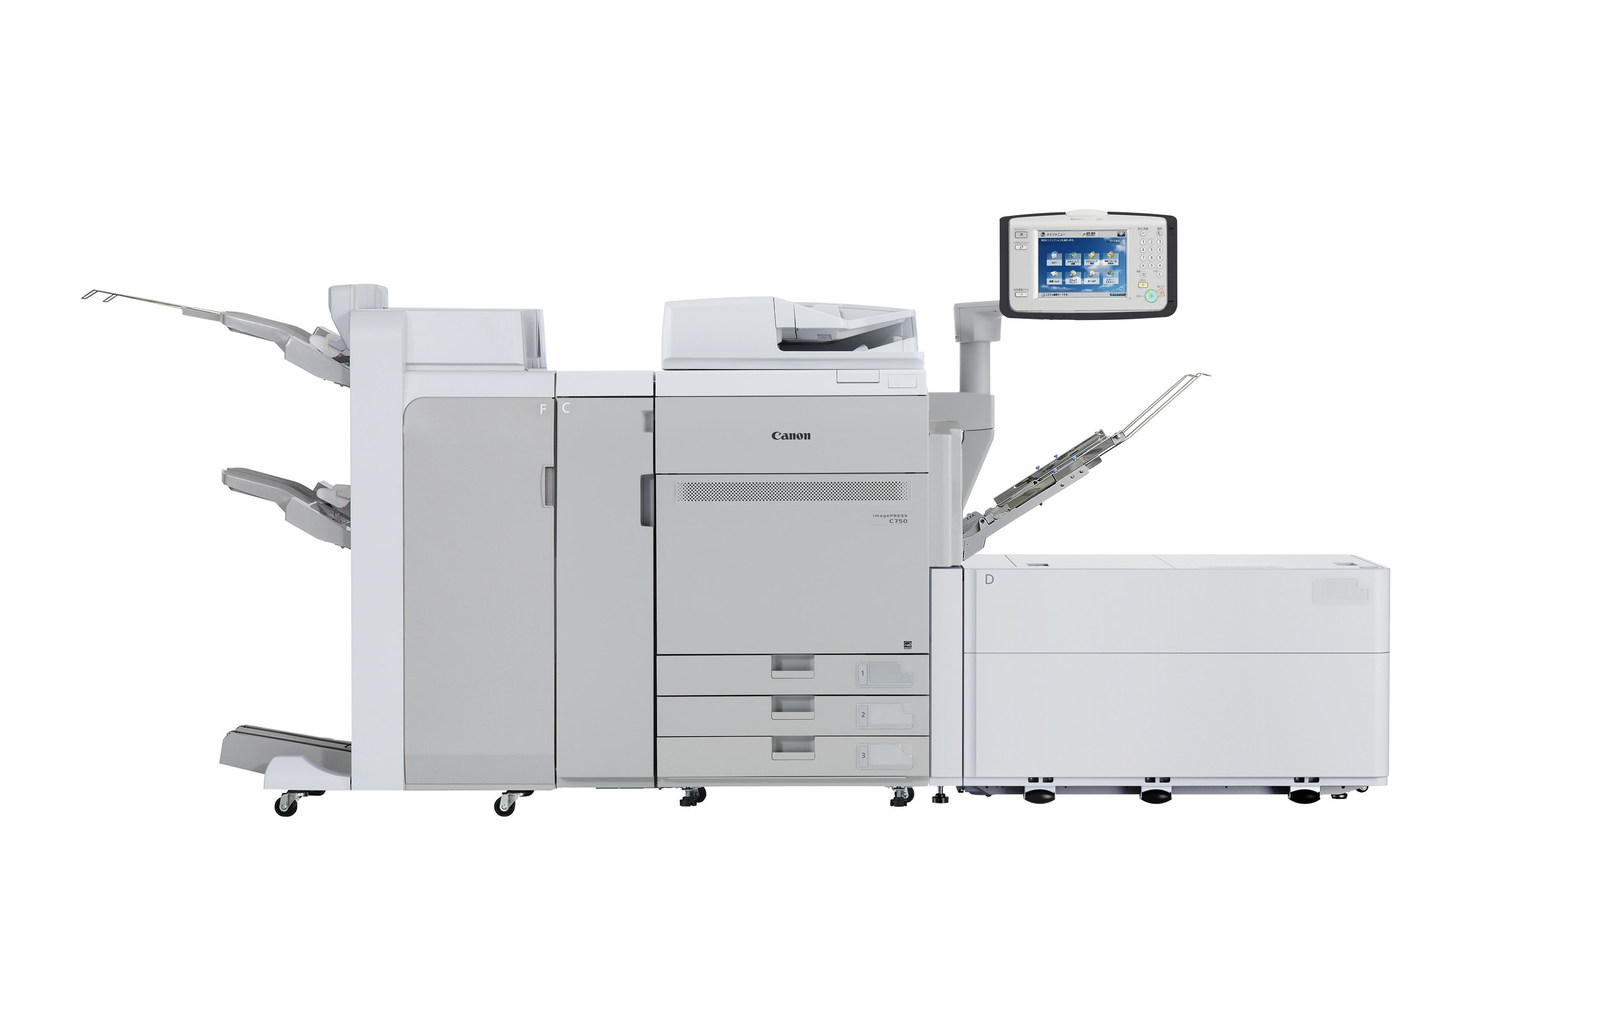 Canon imagePRESS C850 Digital Color Press